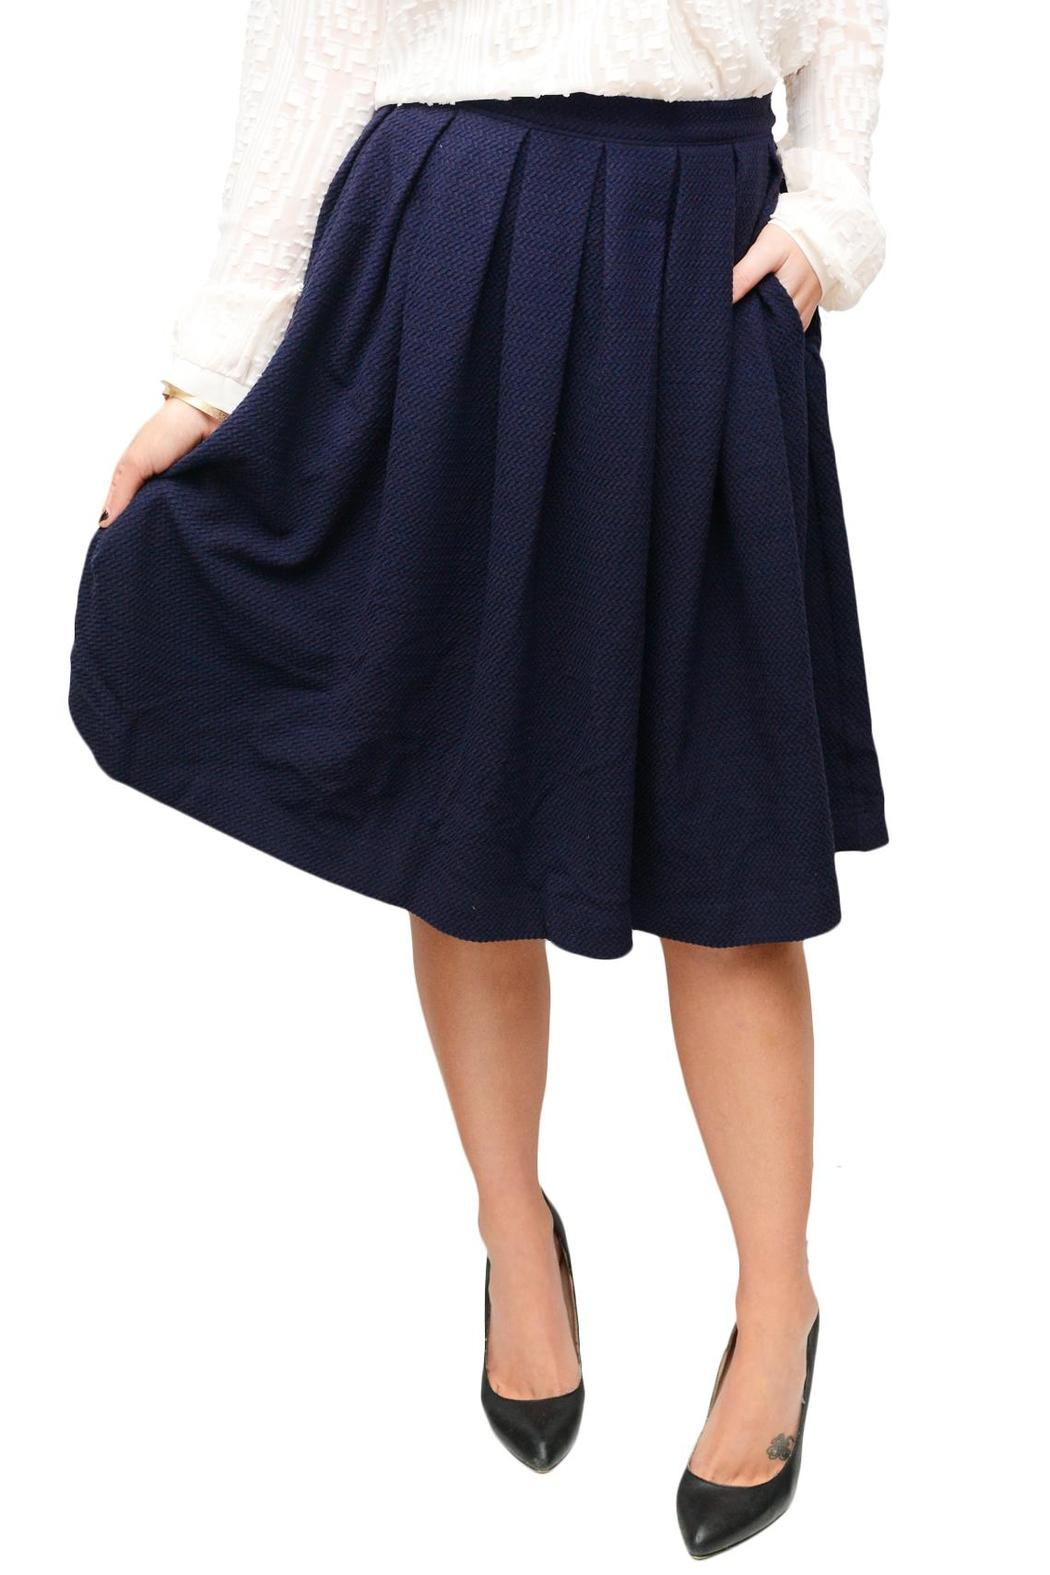 Comme Toi Navy Pleated Skirt from Seattle by SIMPLY CHIC — Shoptiques